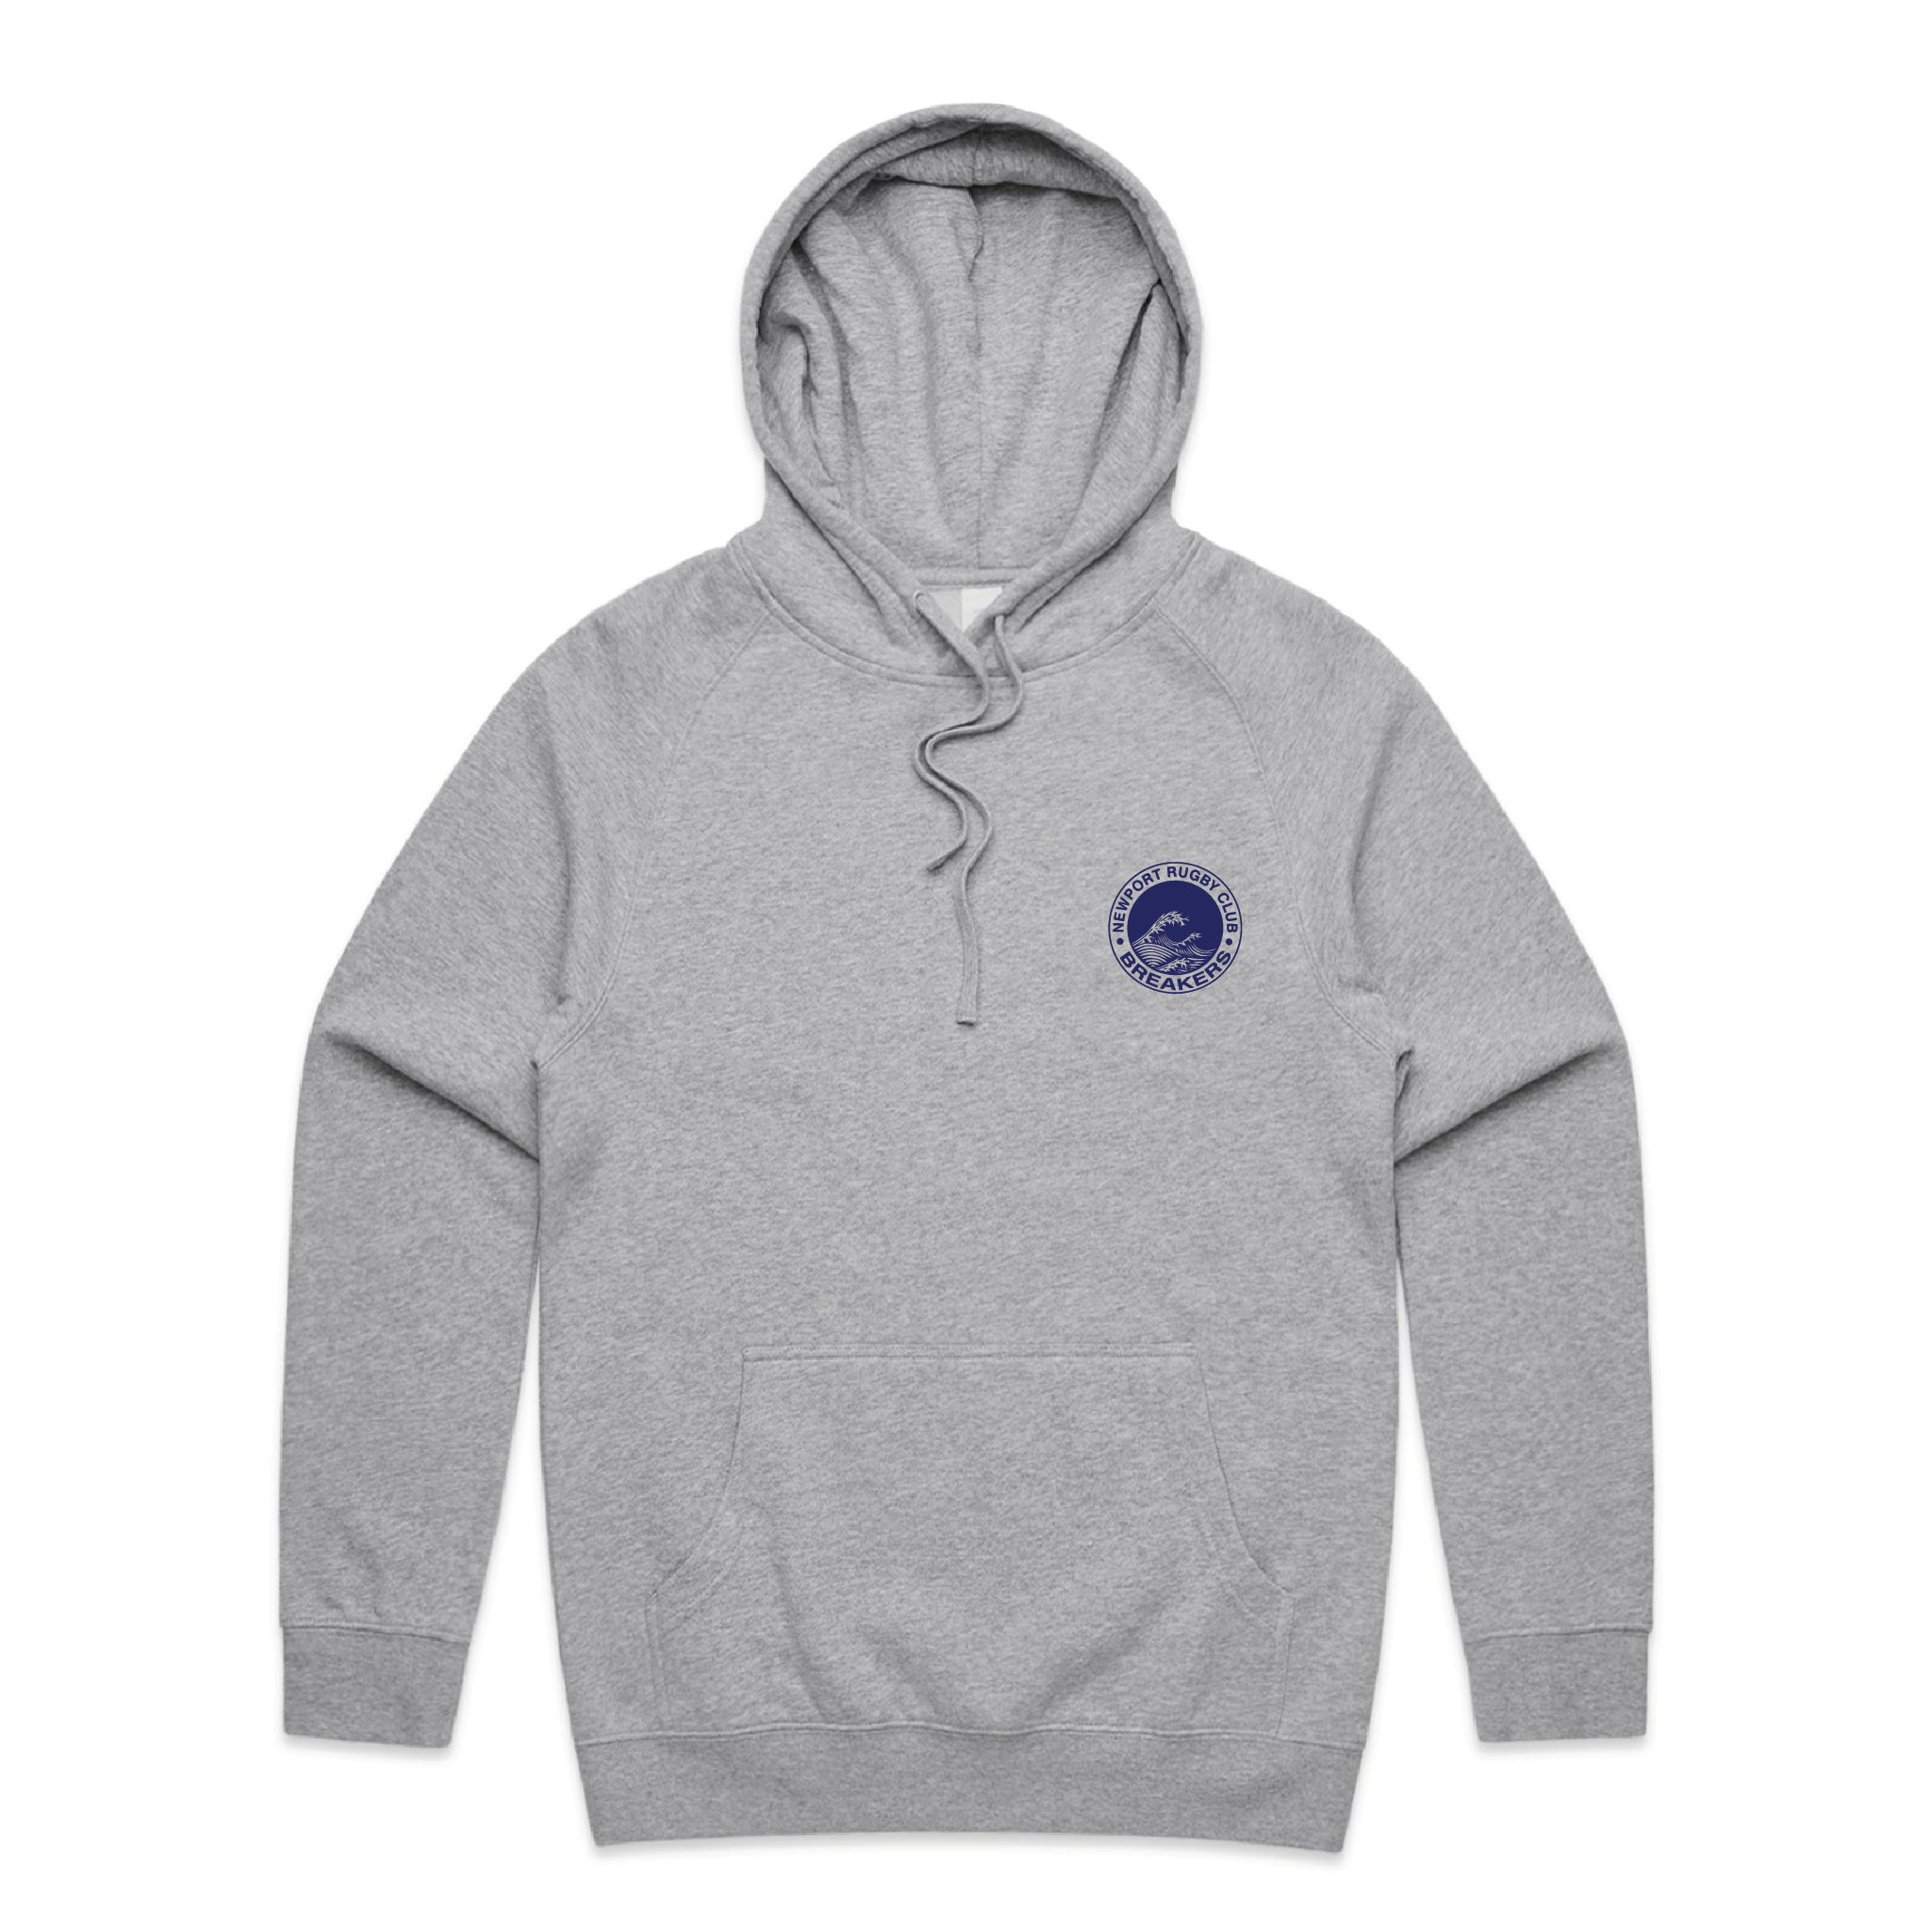 Newport Breakers Youth Hood - Fresh Tees SYD